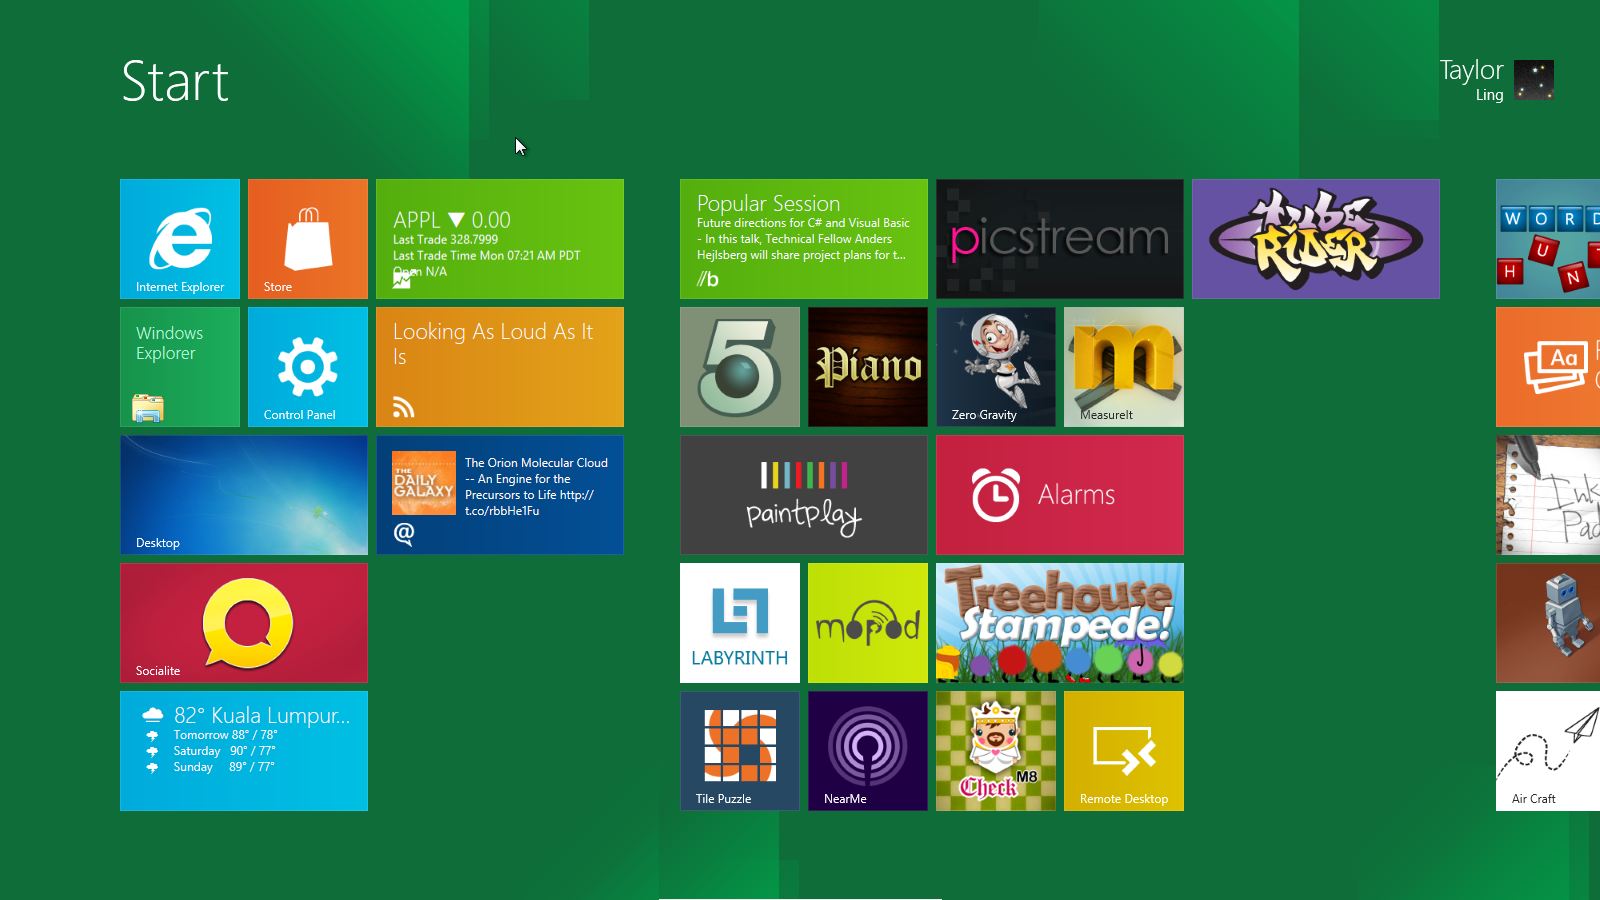 WIN 8 Final Release boots straight to 'Metro' Start Screen